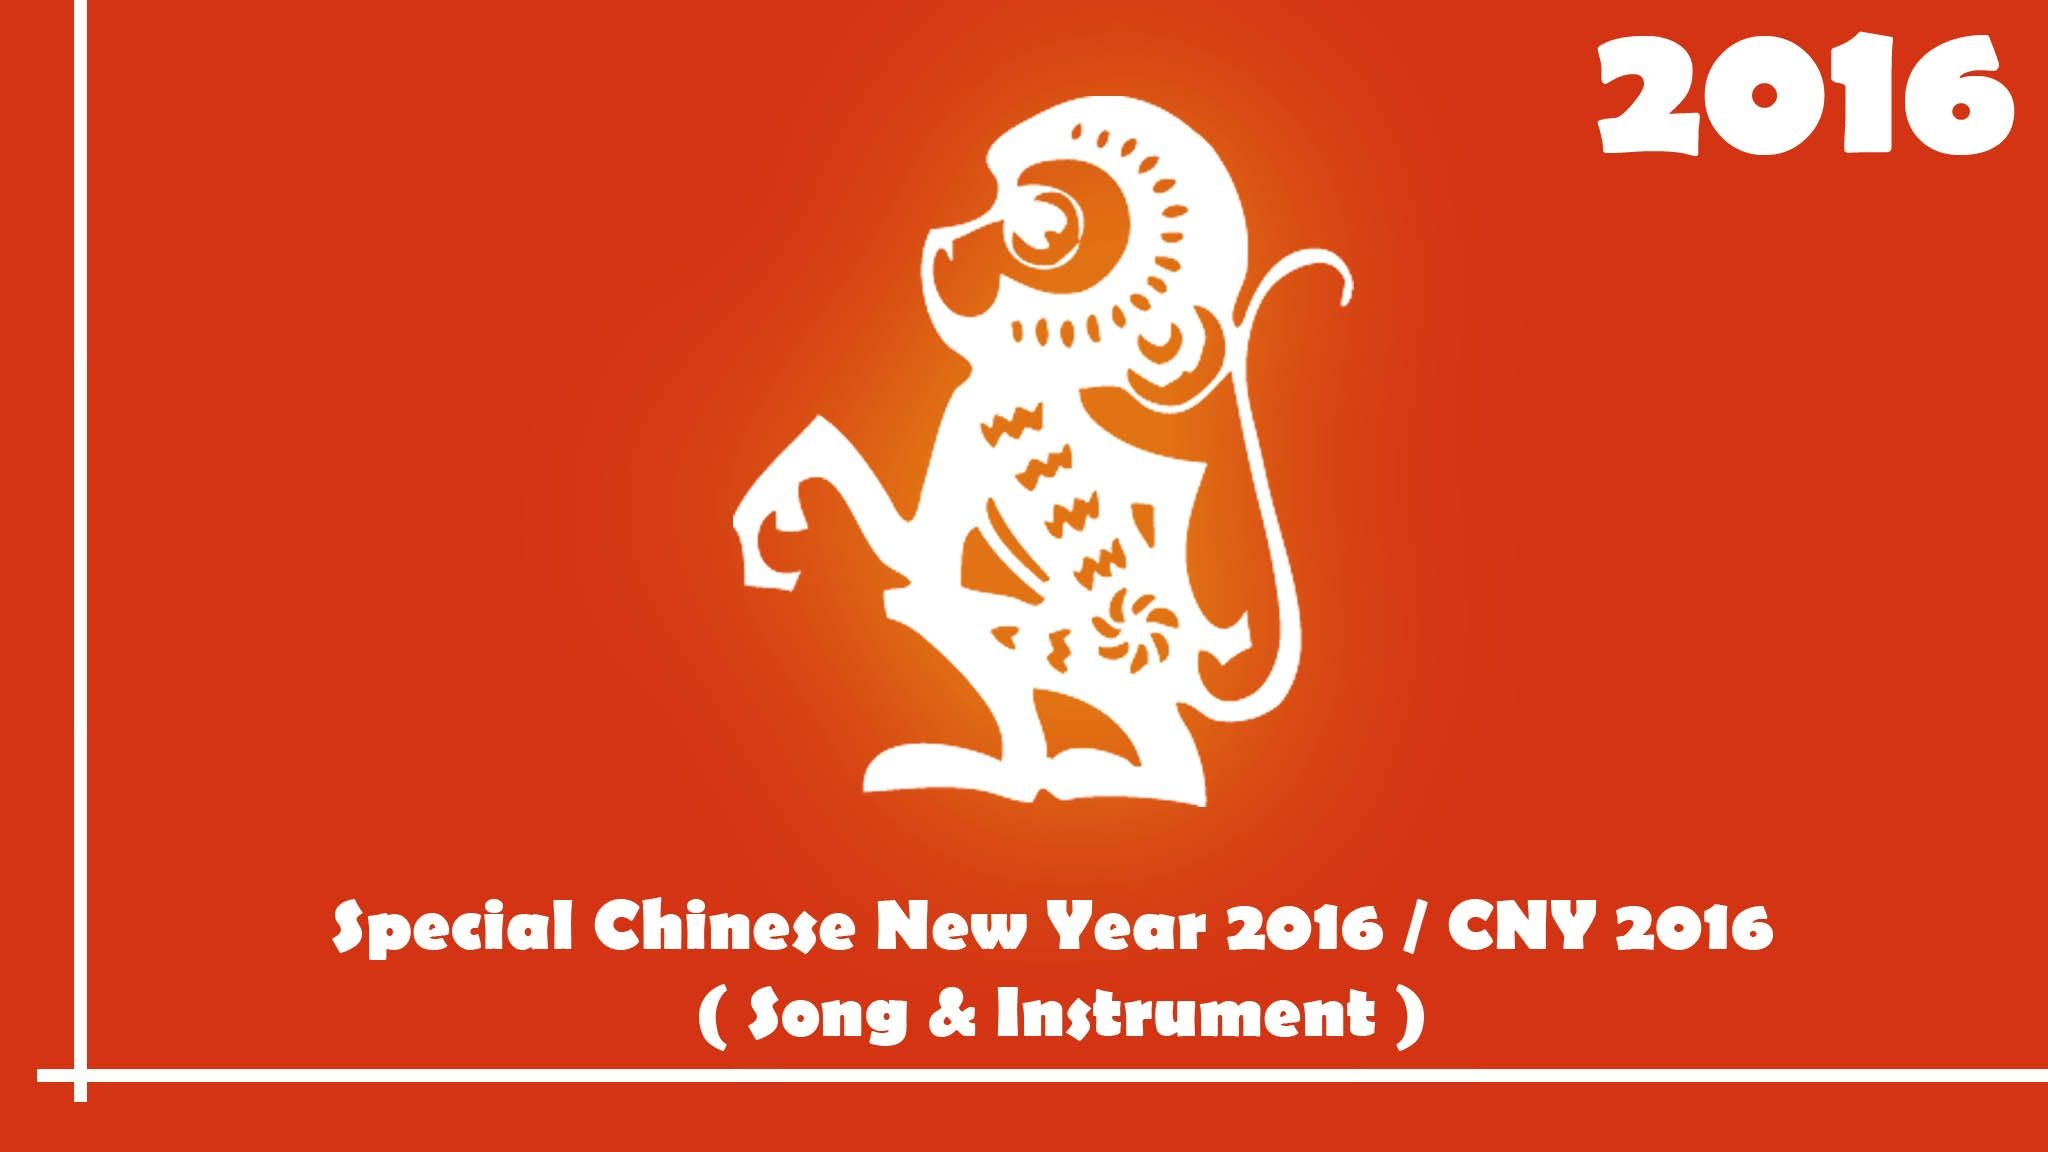 Special Chinese New Year 2016 Cny 2016